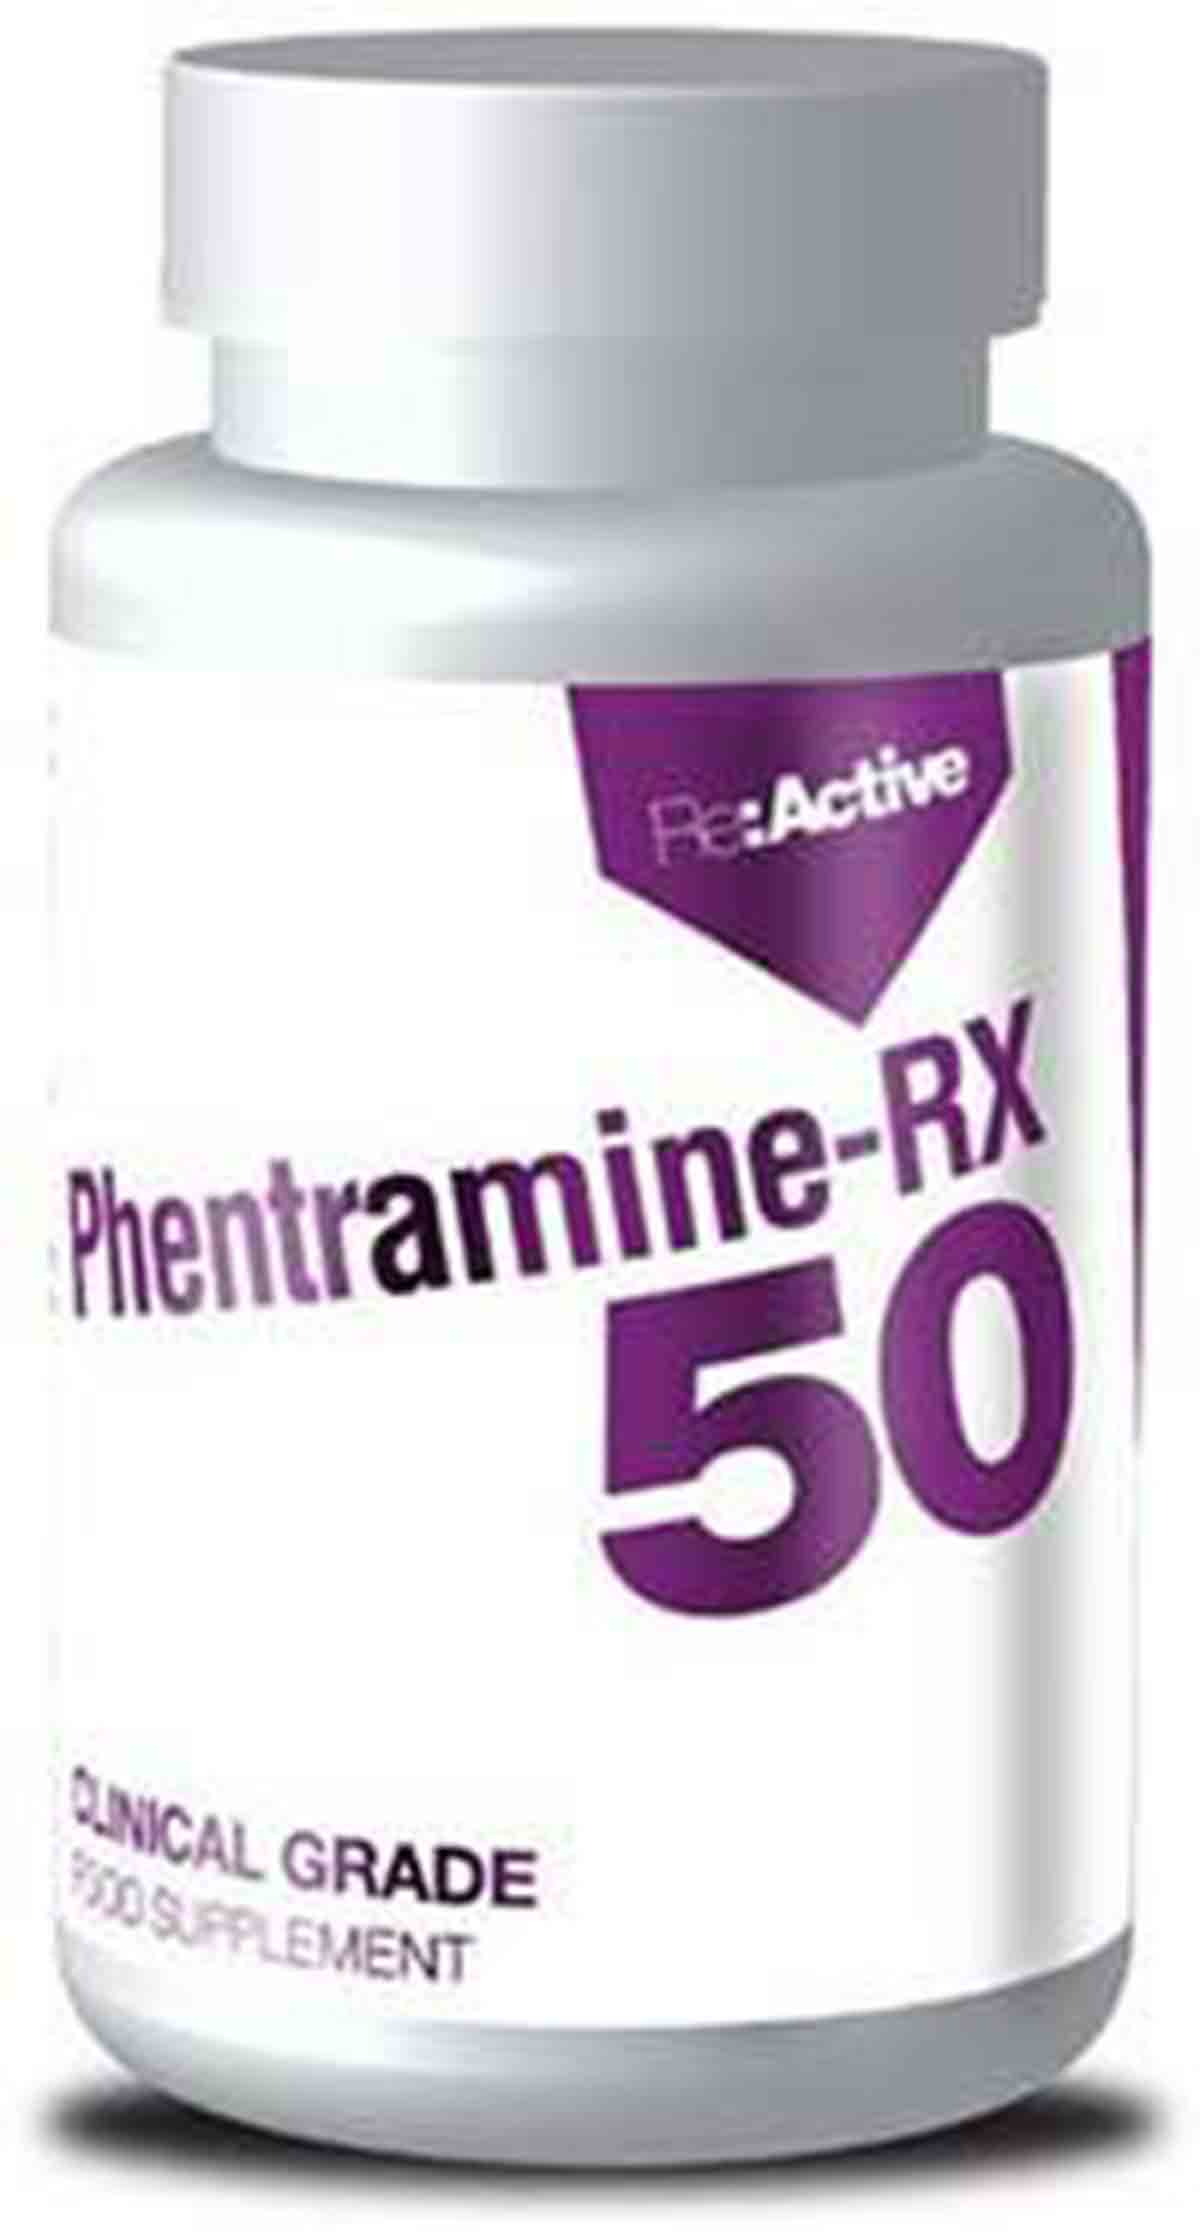 Re:Active Phentramine-RX 50